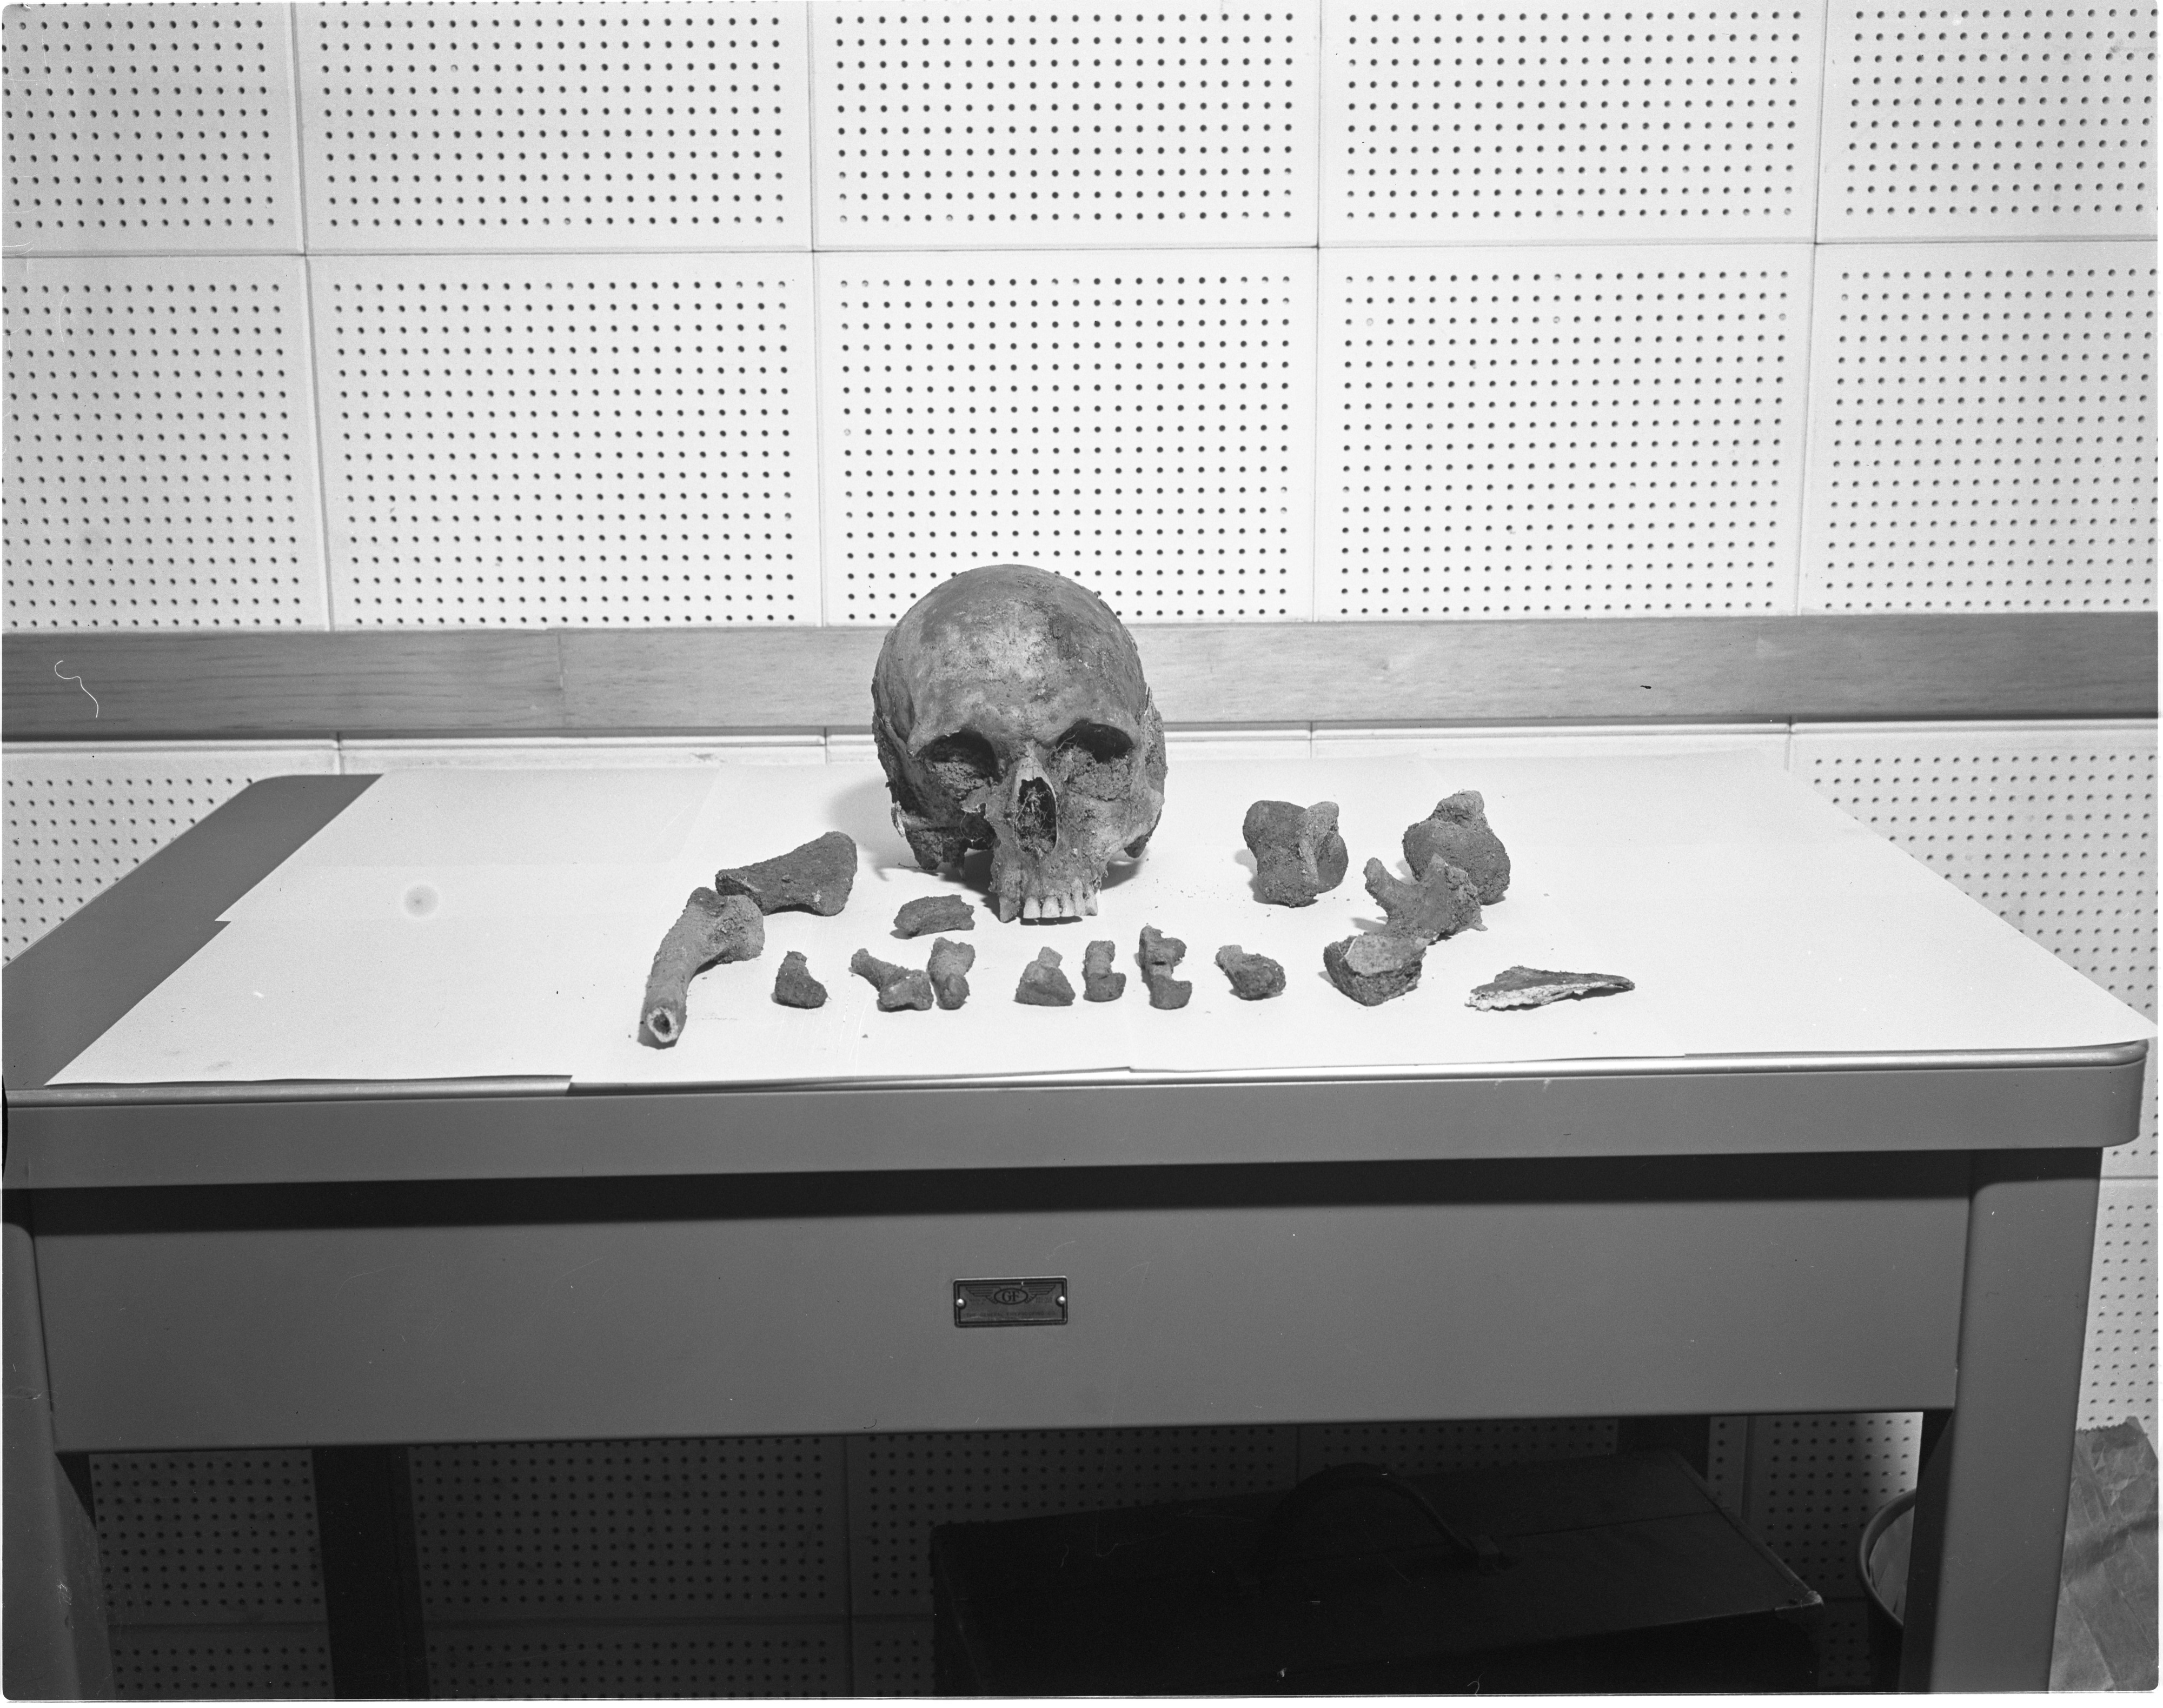 Human Skull And Bones Found On Site Of Former Felch Park, January 1957 image